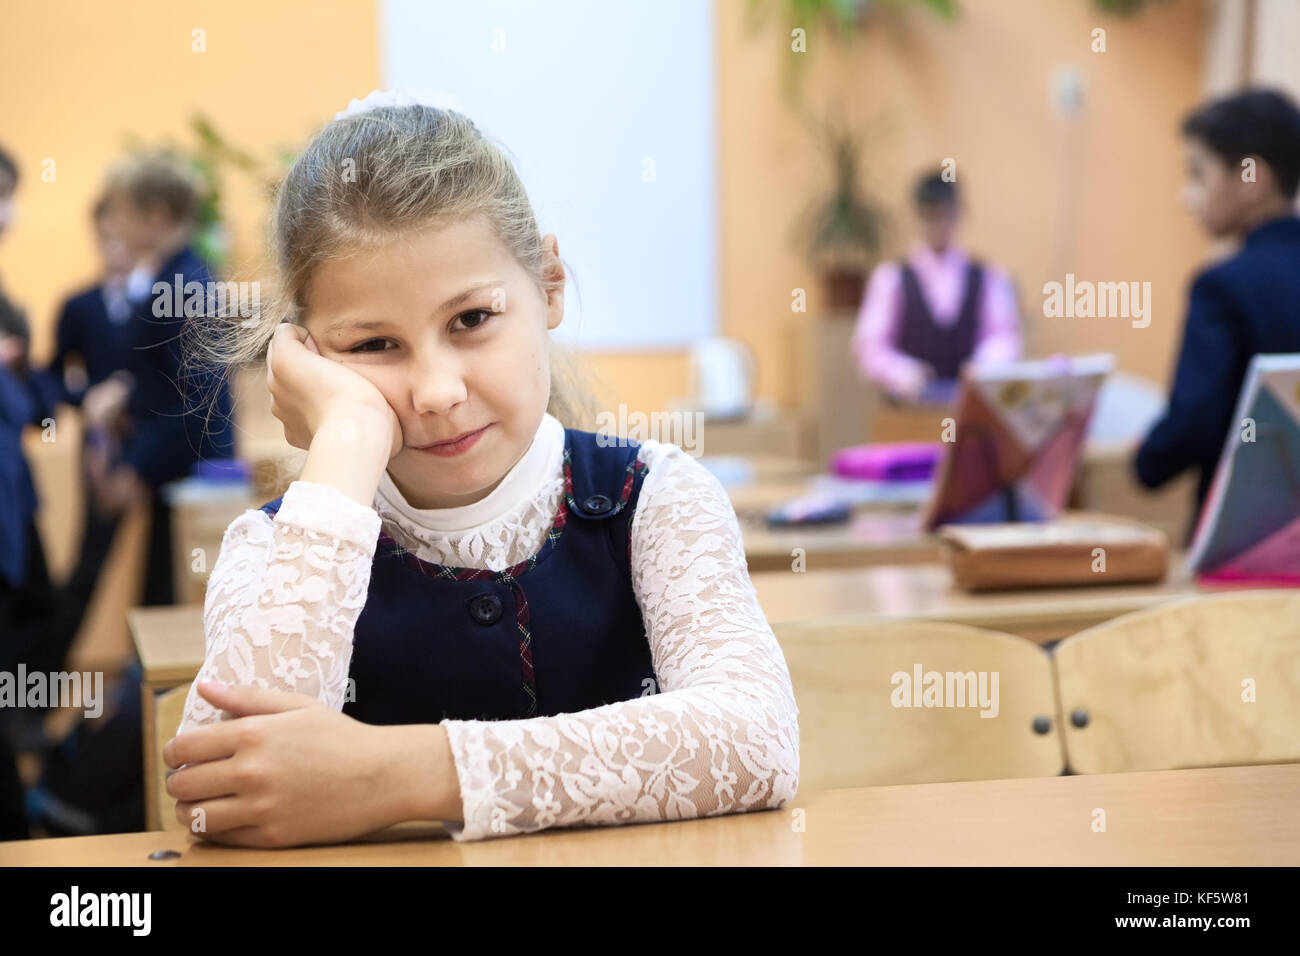 Young girl a pupil is in a bad temper on recess while other children playing on background - Stock Image